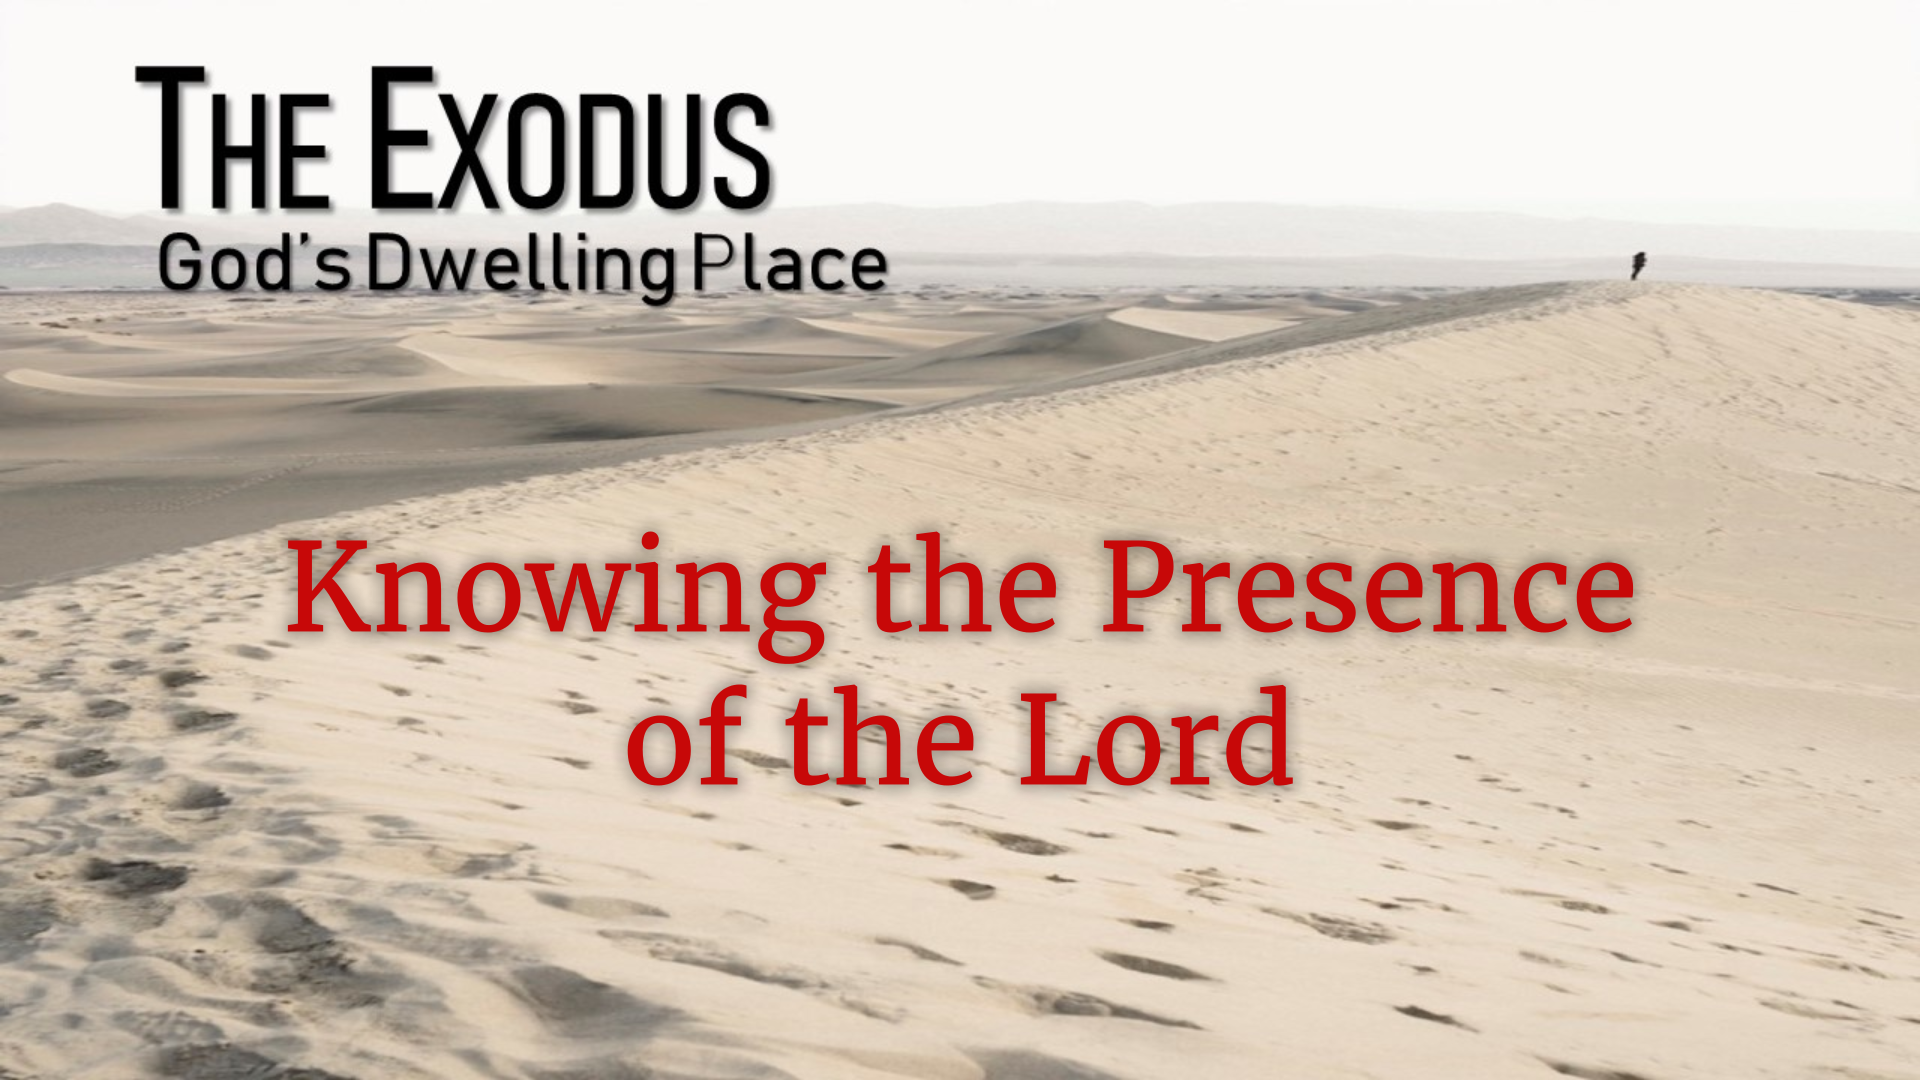 Image for the sermon Knowing the Presence of The Lord